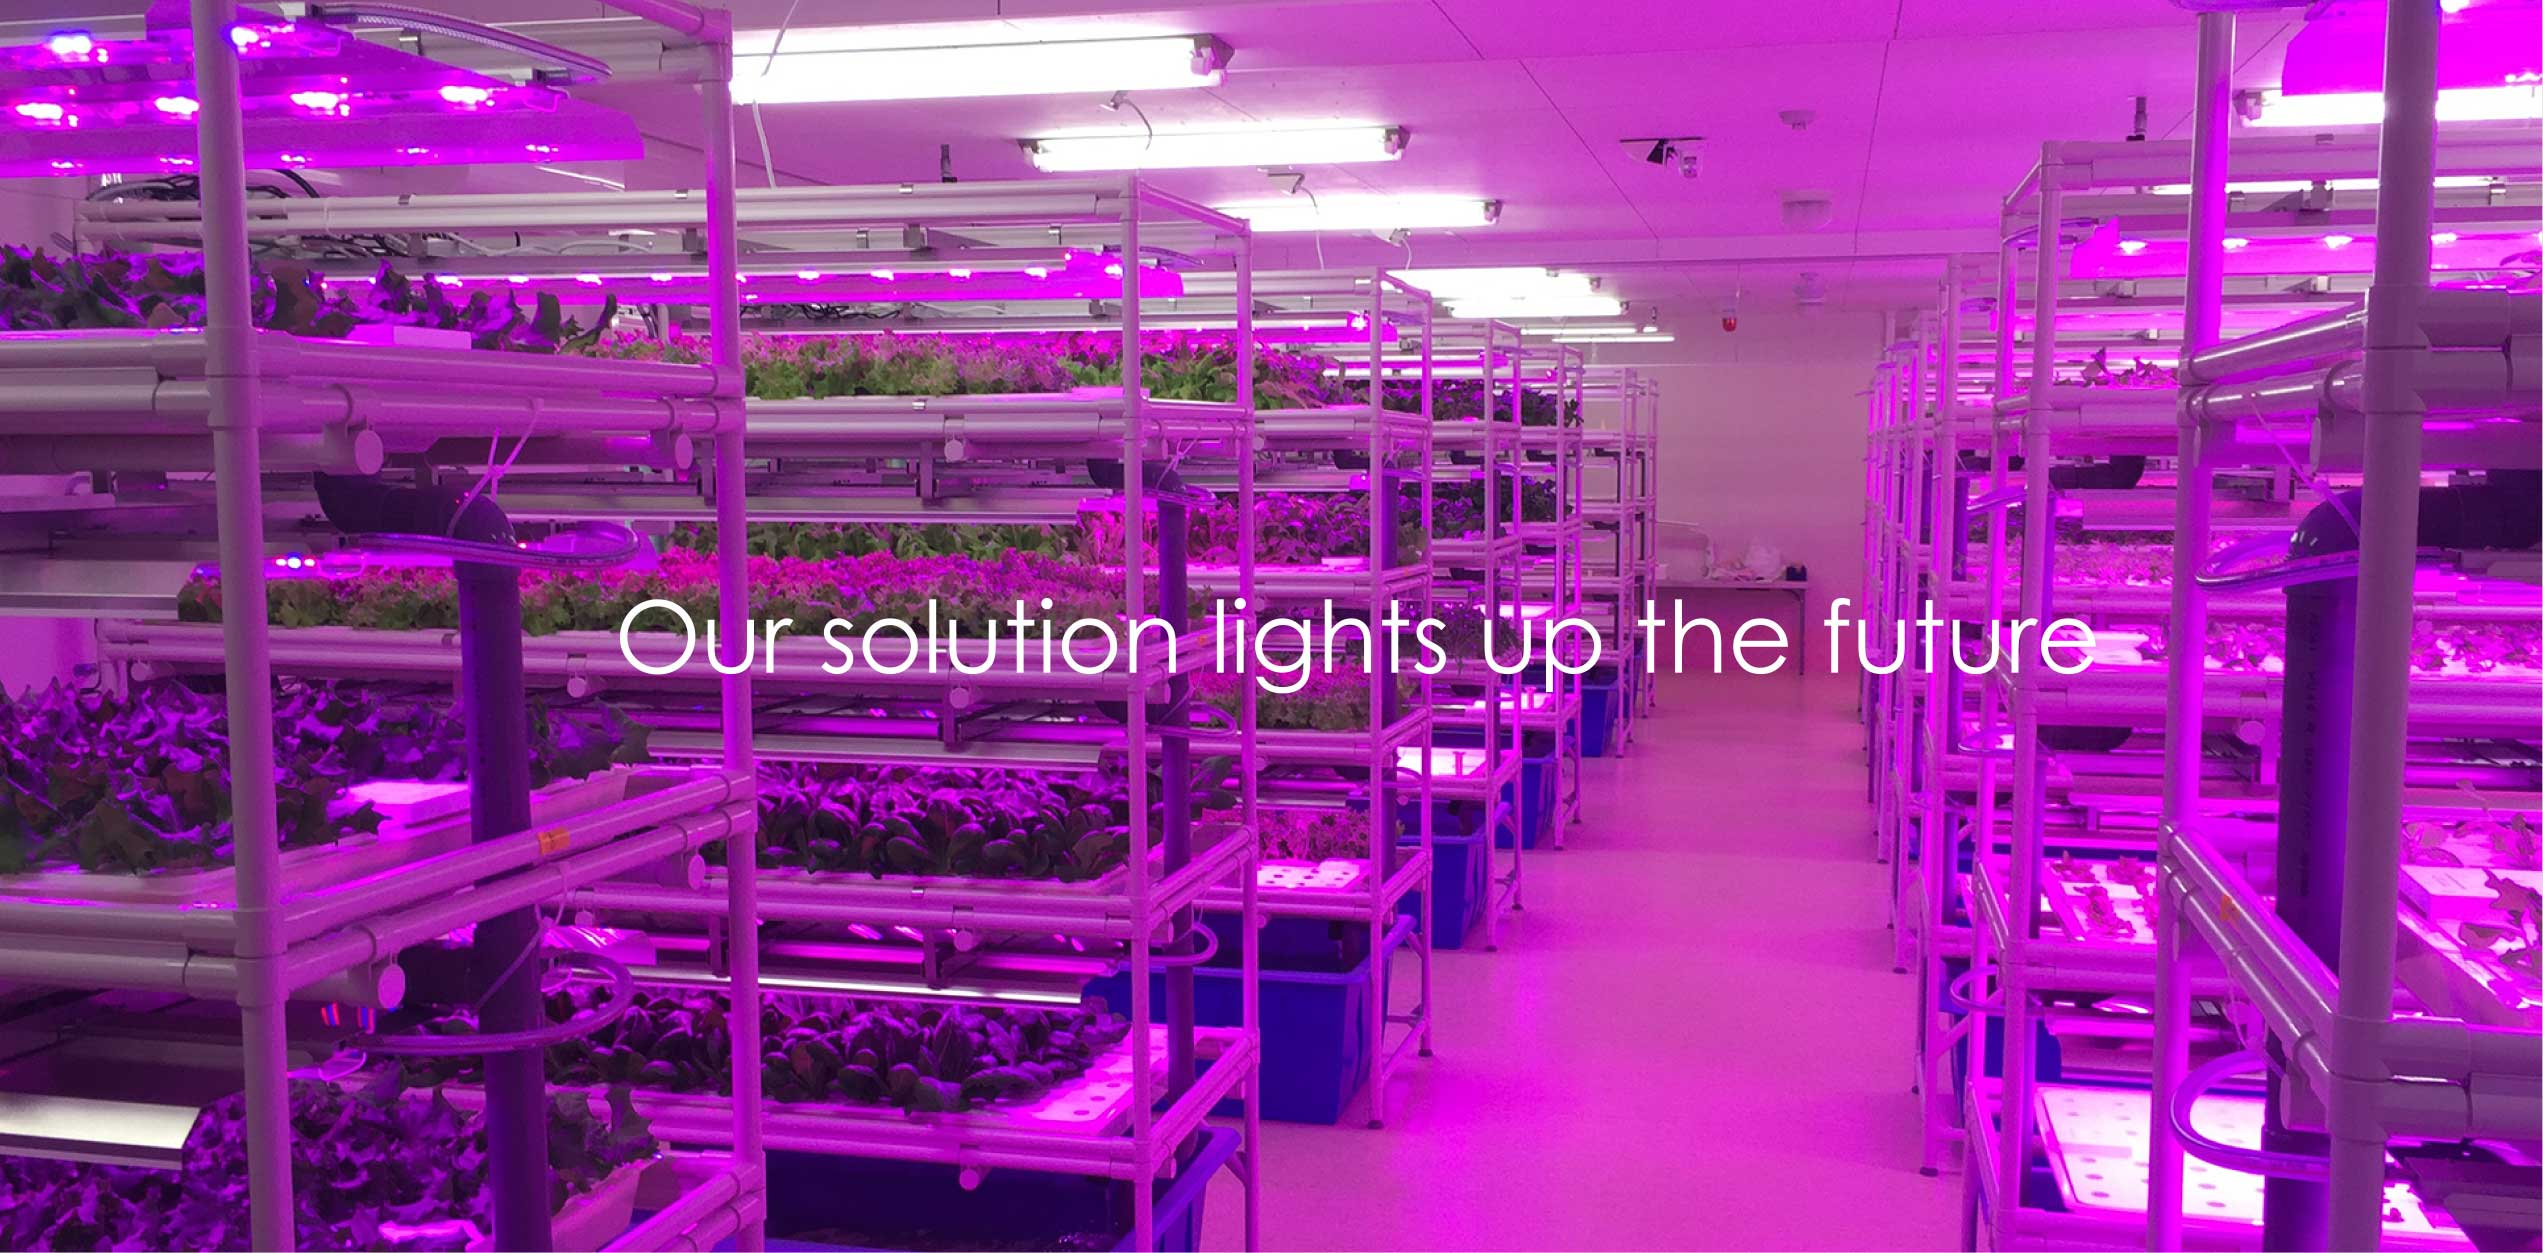 Our solution lights up the future